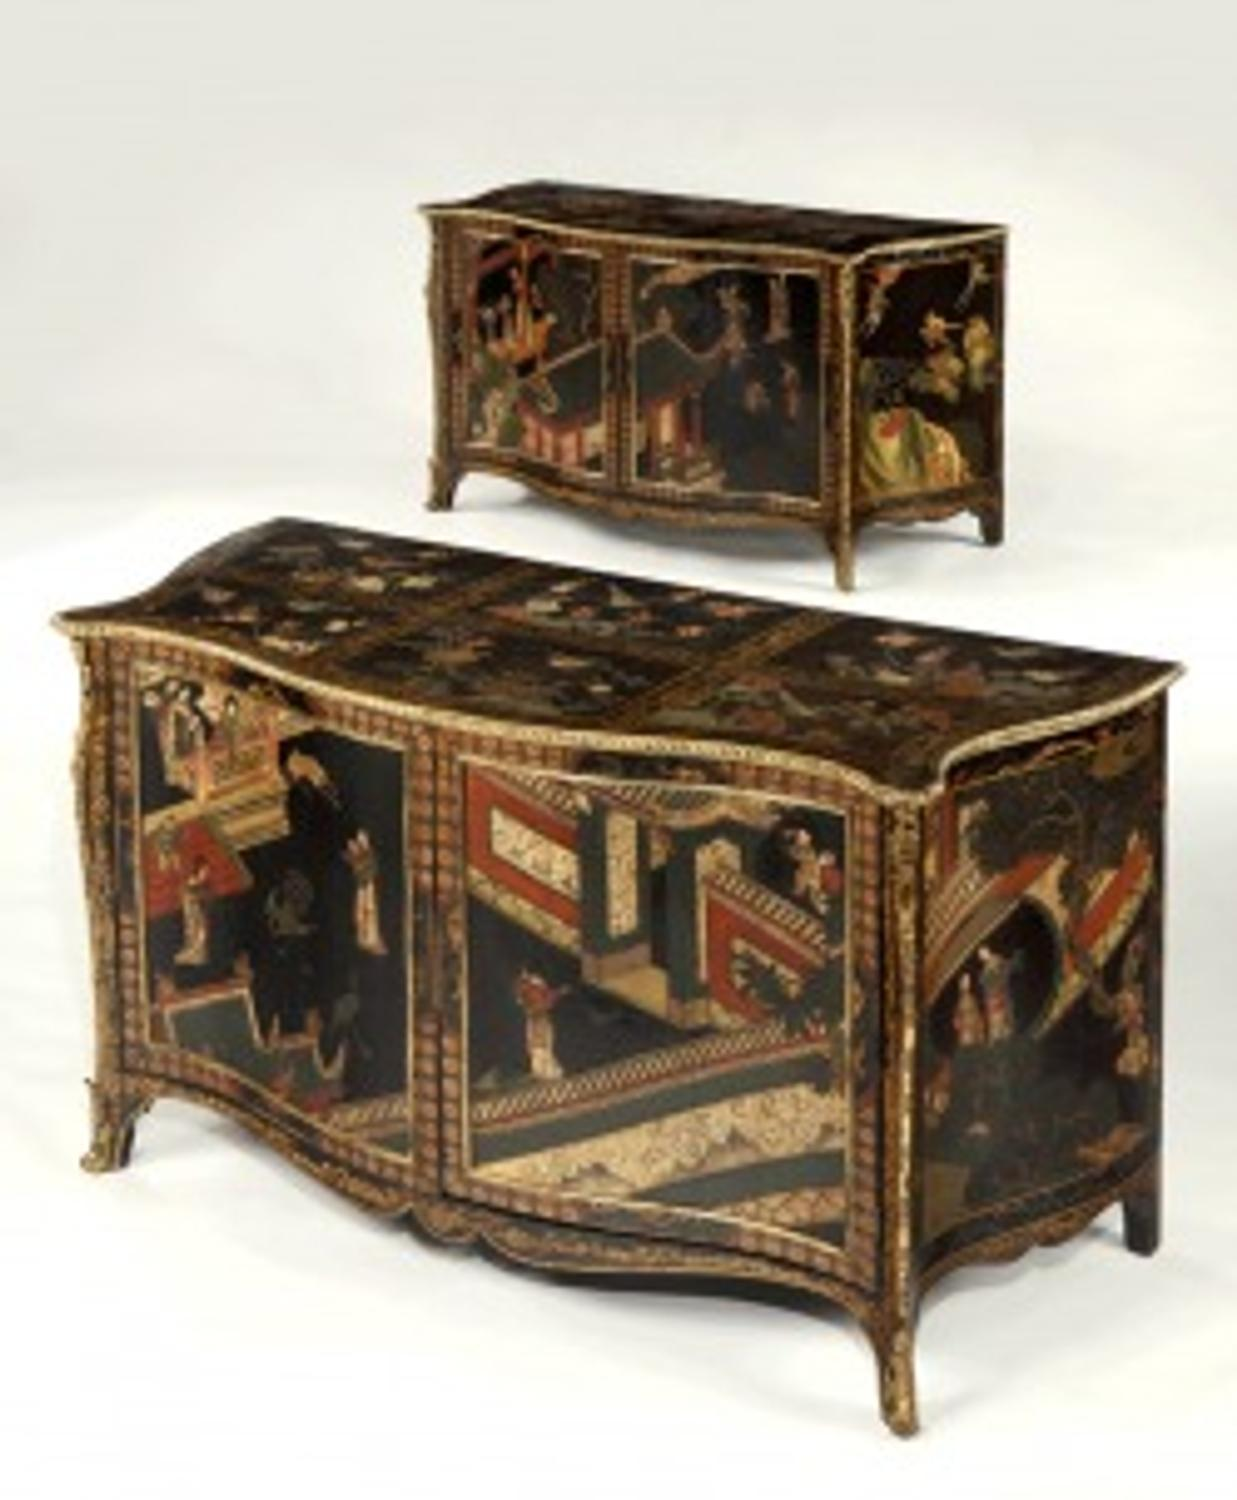 Downton Abbey Meets Uptown Chic At The International Fine Art Antique Dealers Show Artwire